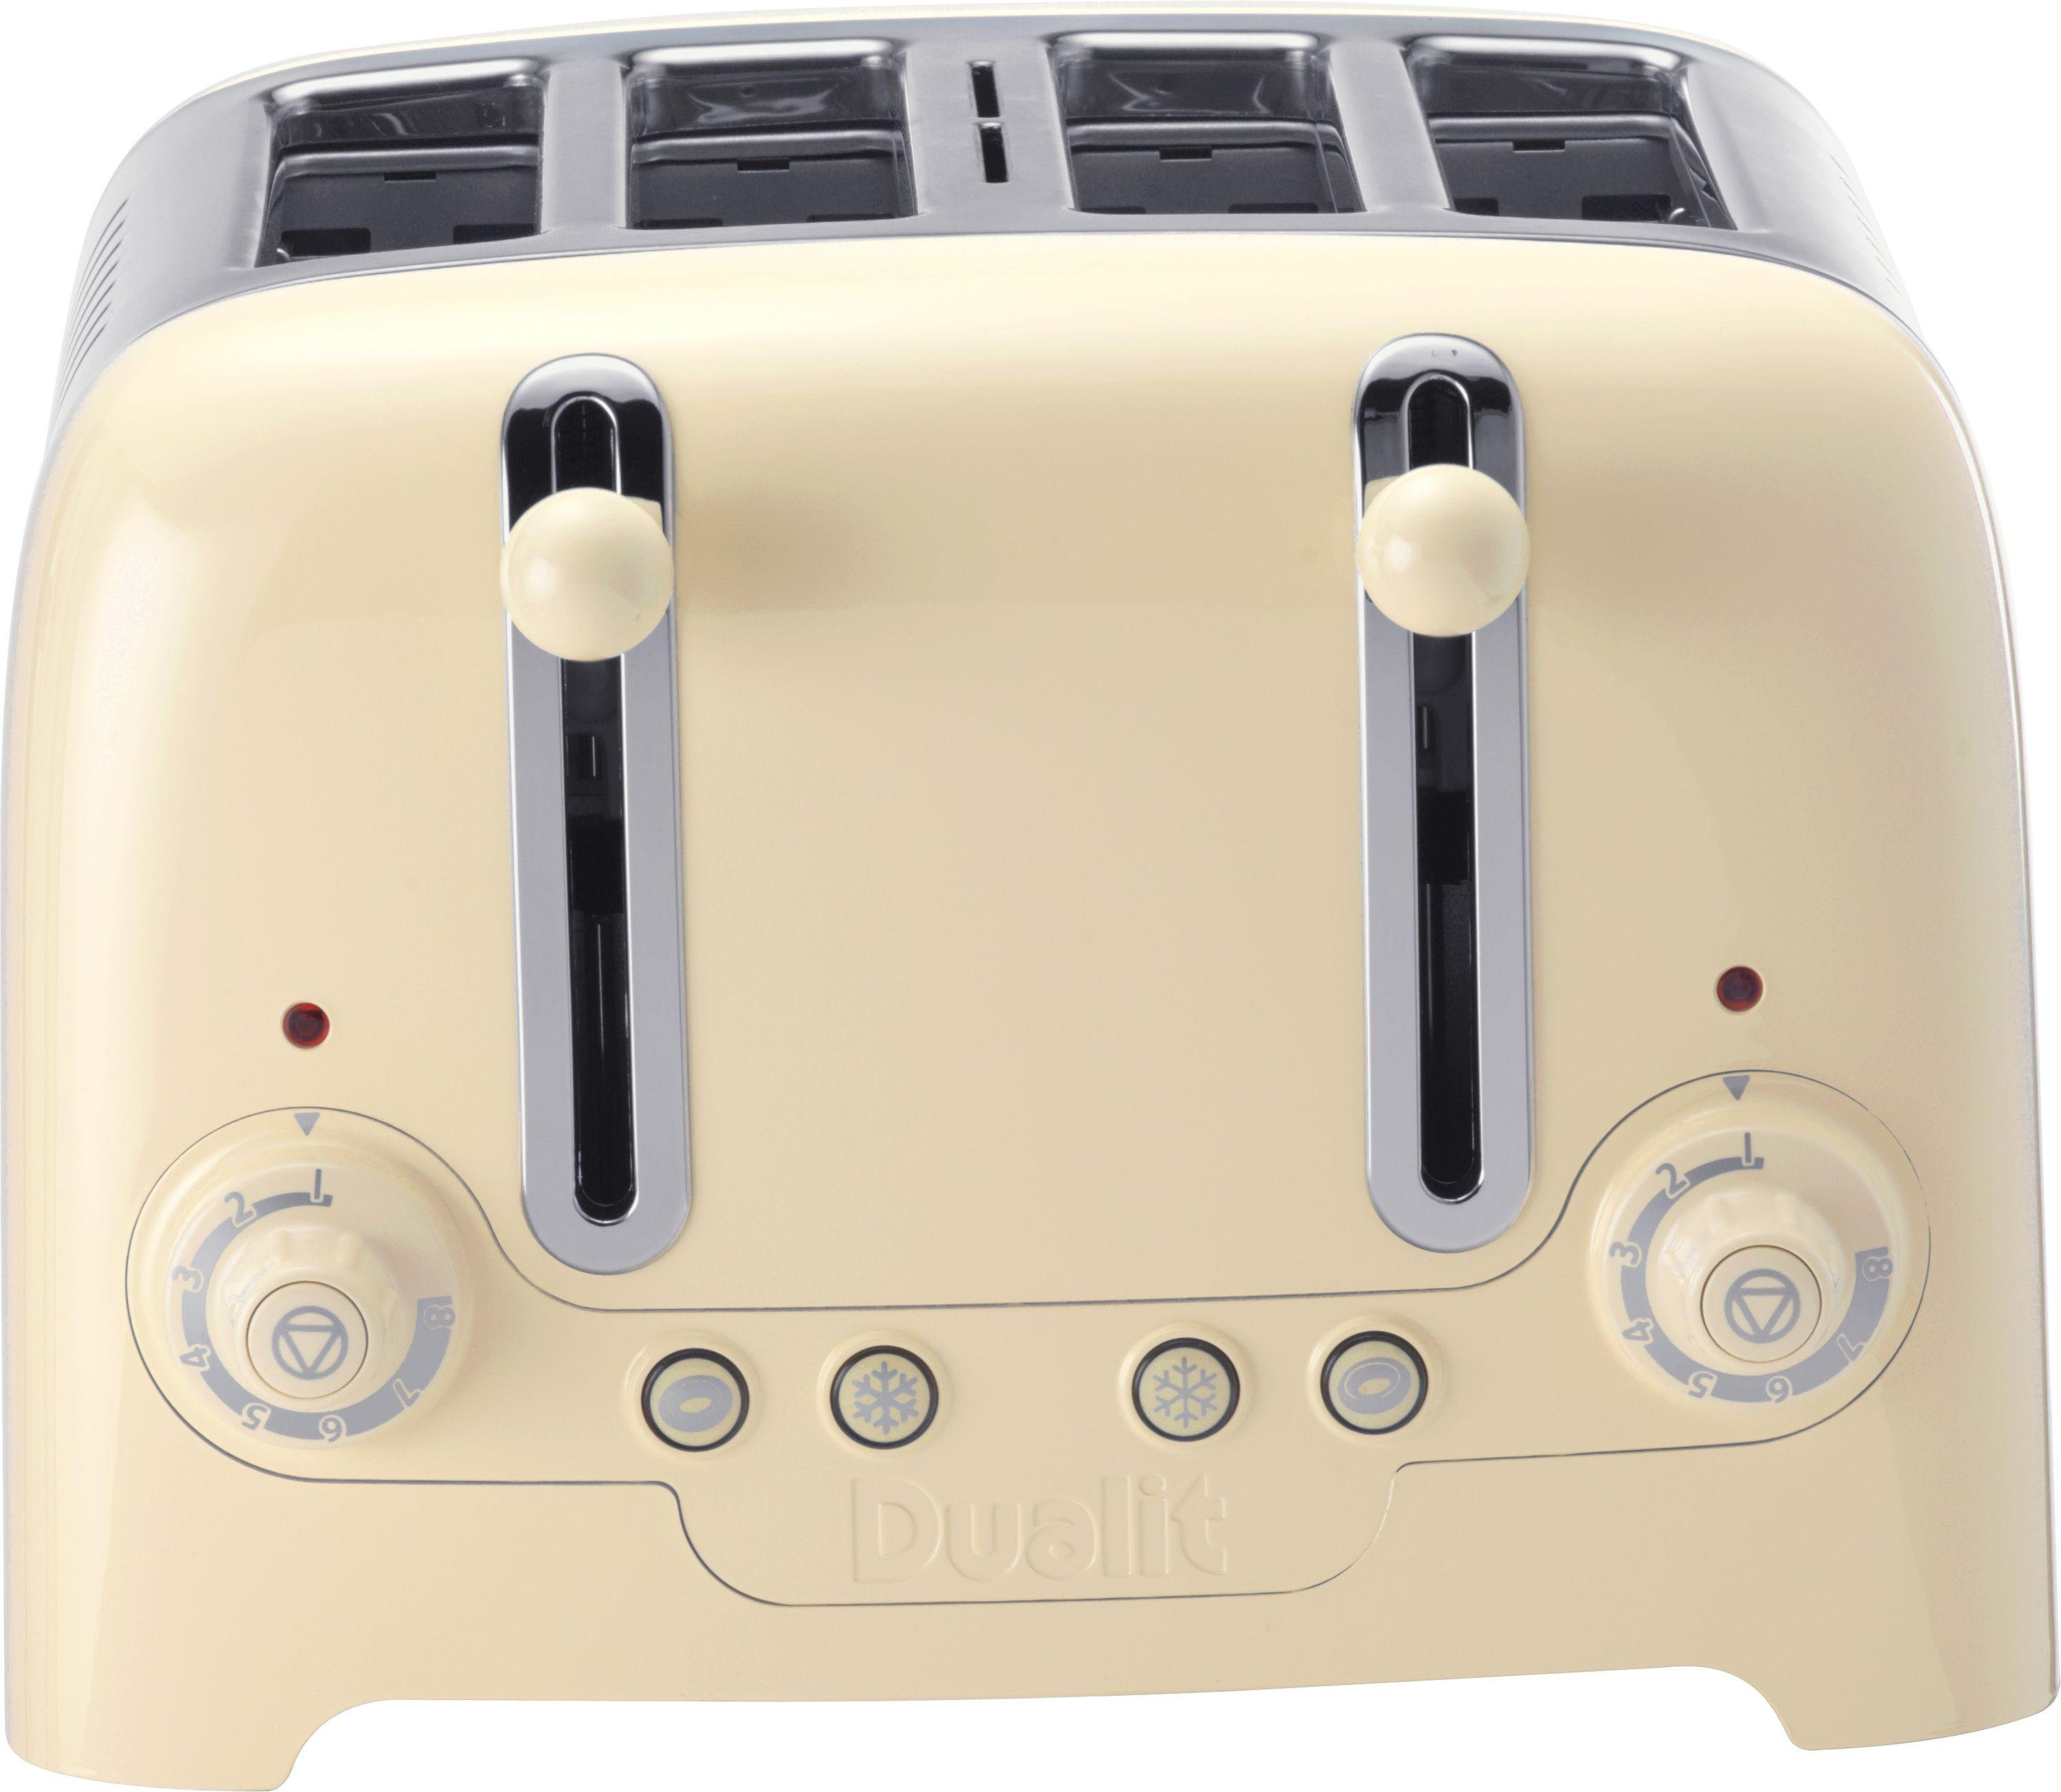 Buy Dualit 4 Slice Toaster Cream at Argos Your